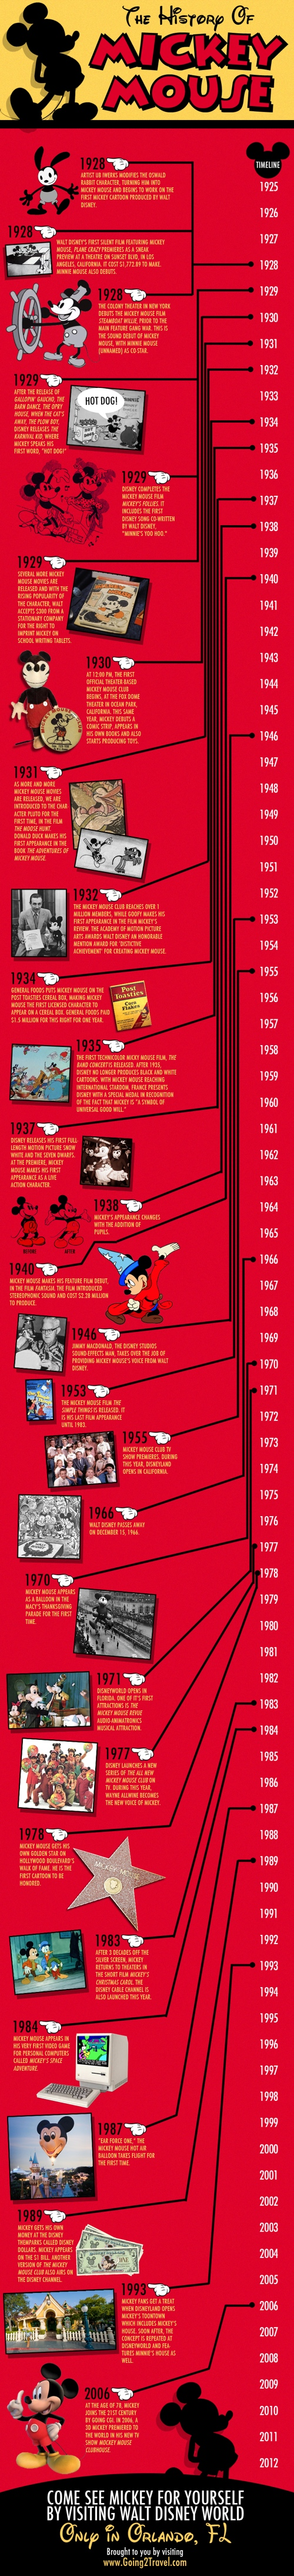 Sejarah Mickey Mouse (Infographic)